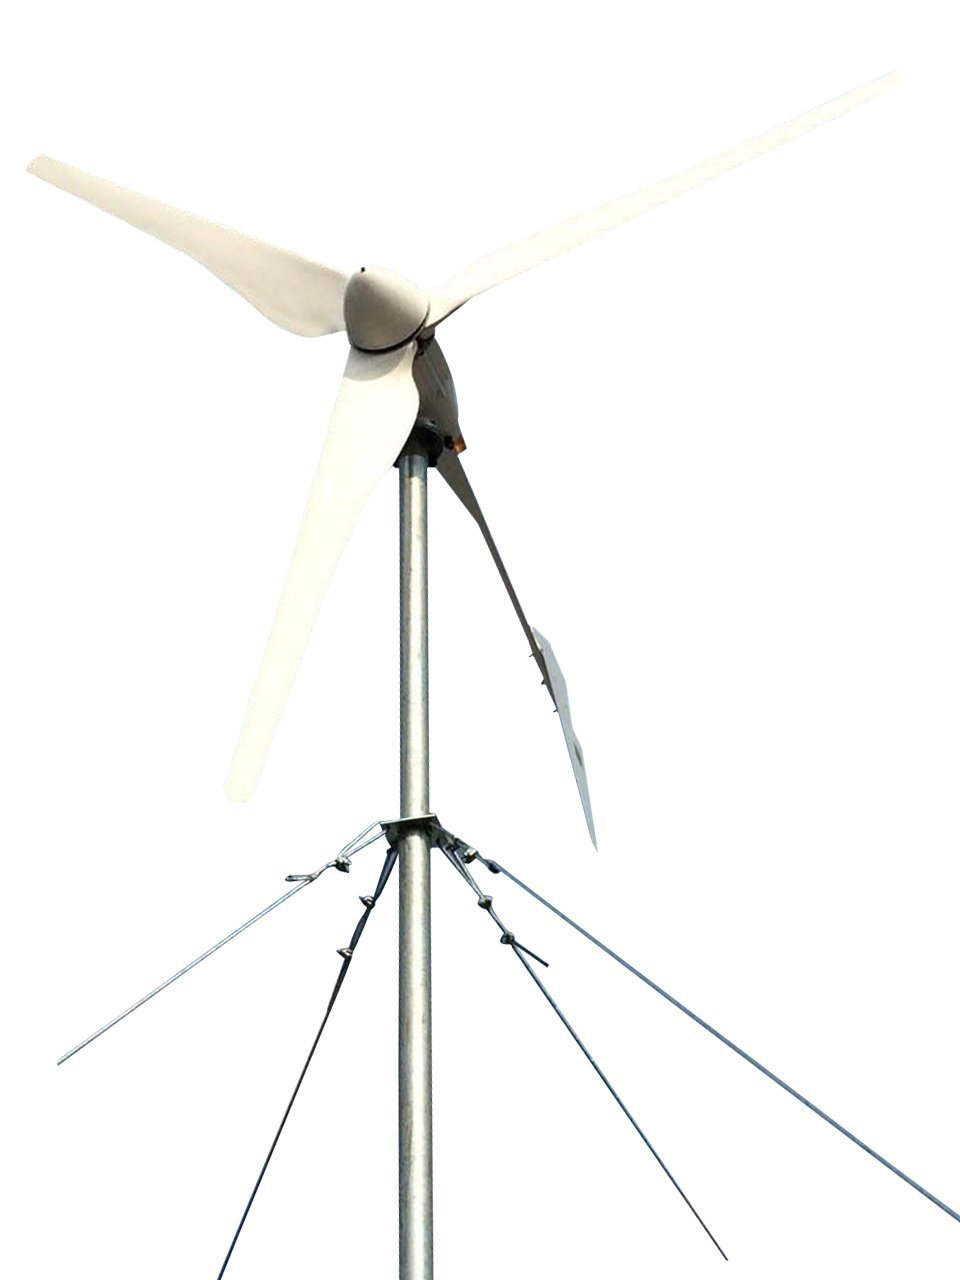 Tumo Int 2000w 3 Blades Furled Tail Wind Turbine Dumpload Charge Controller Generator With And Solar Hybrid 48v Garden Outdoor